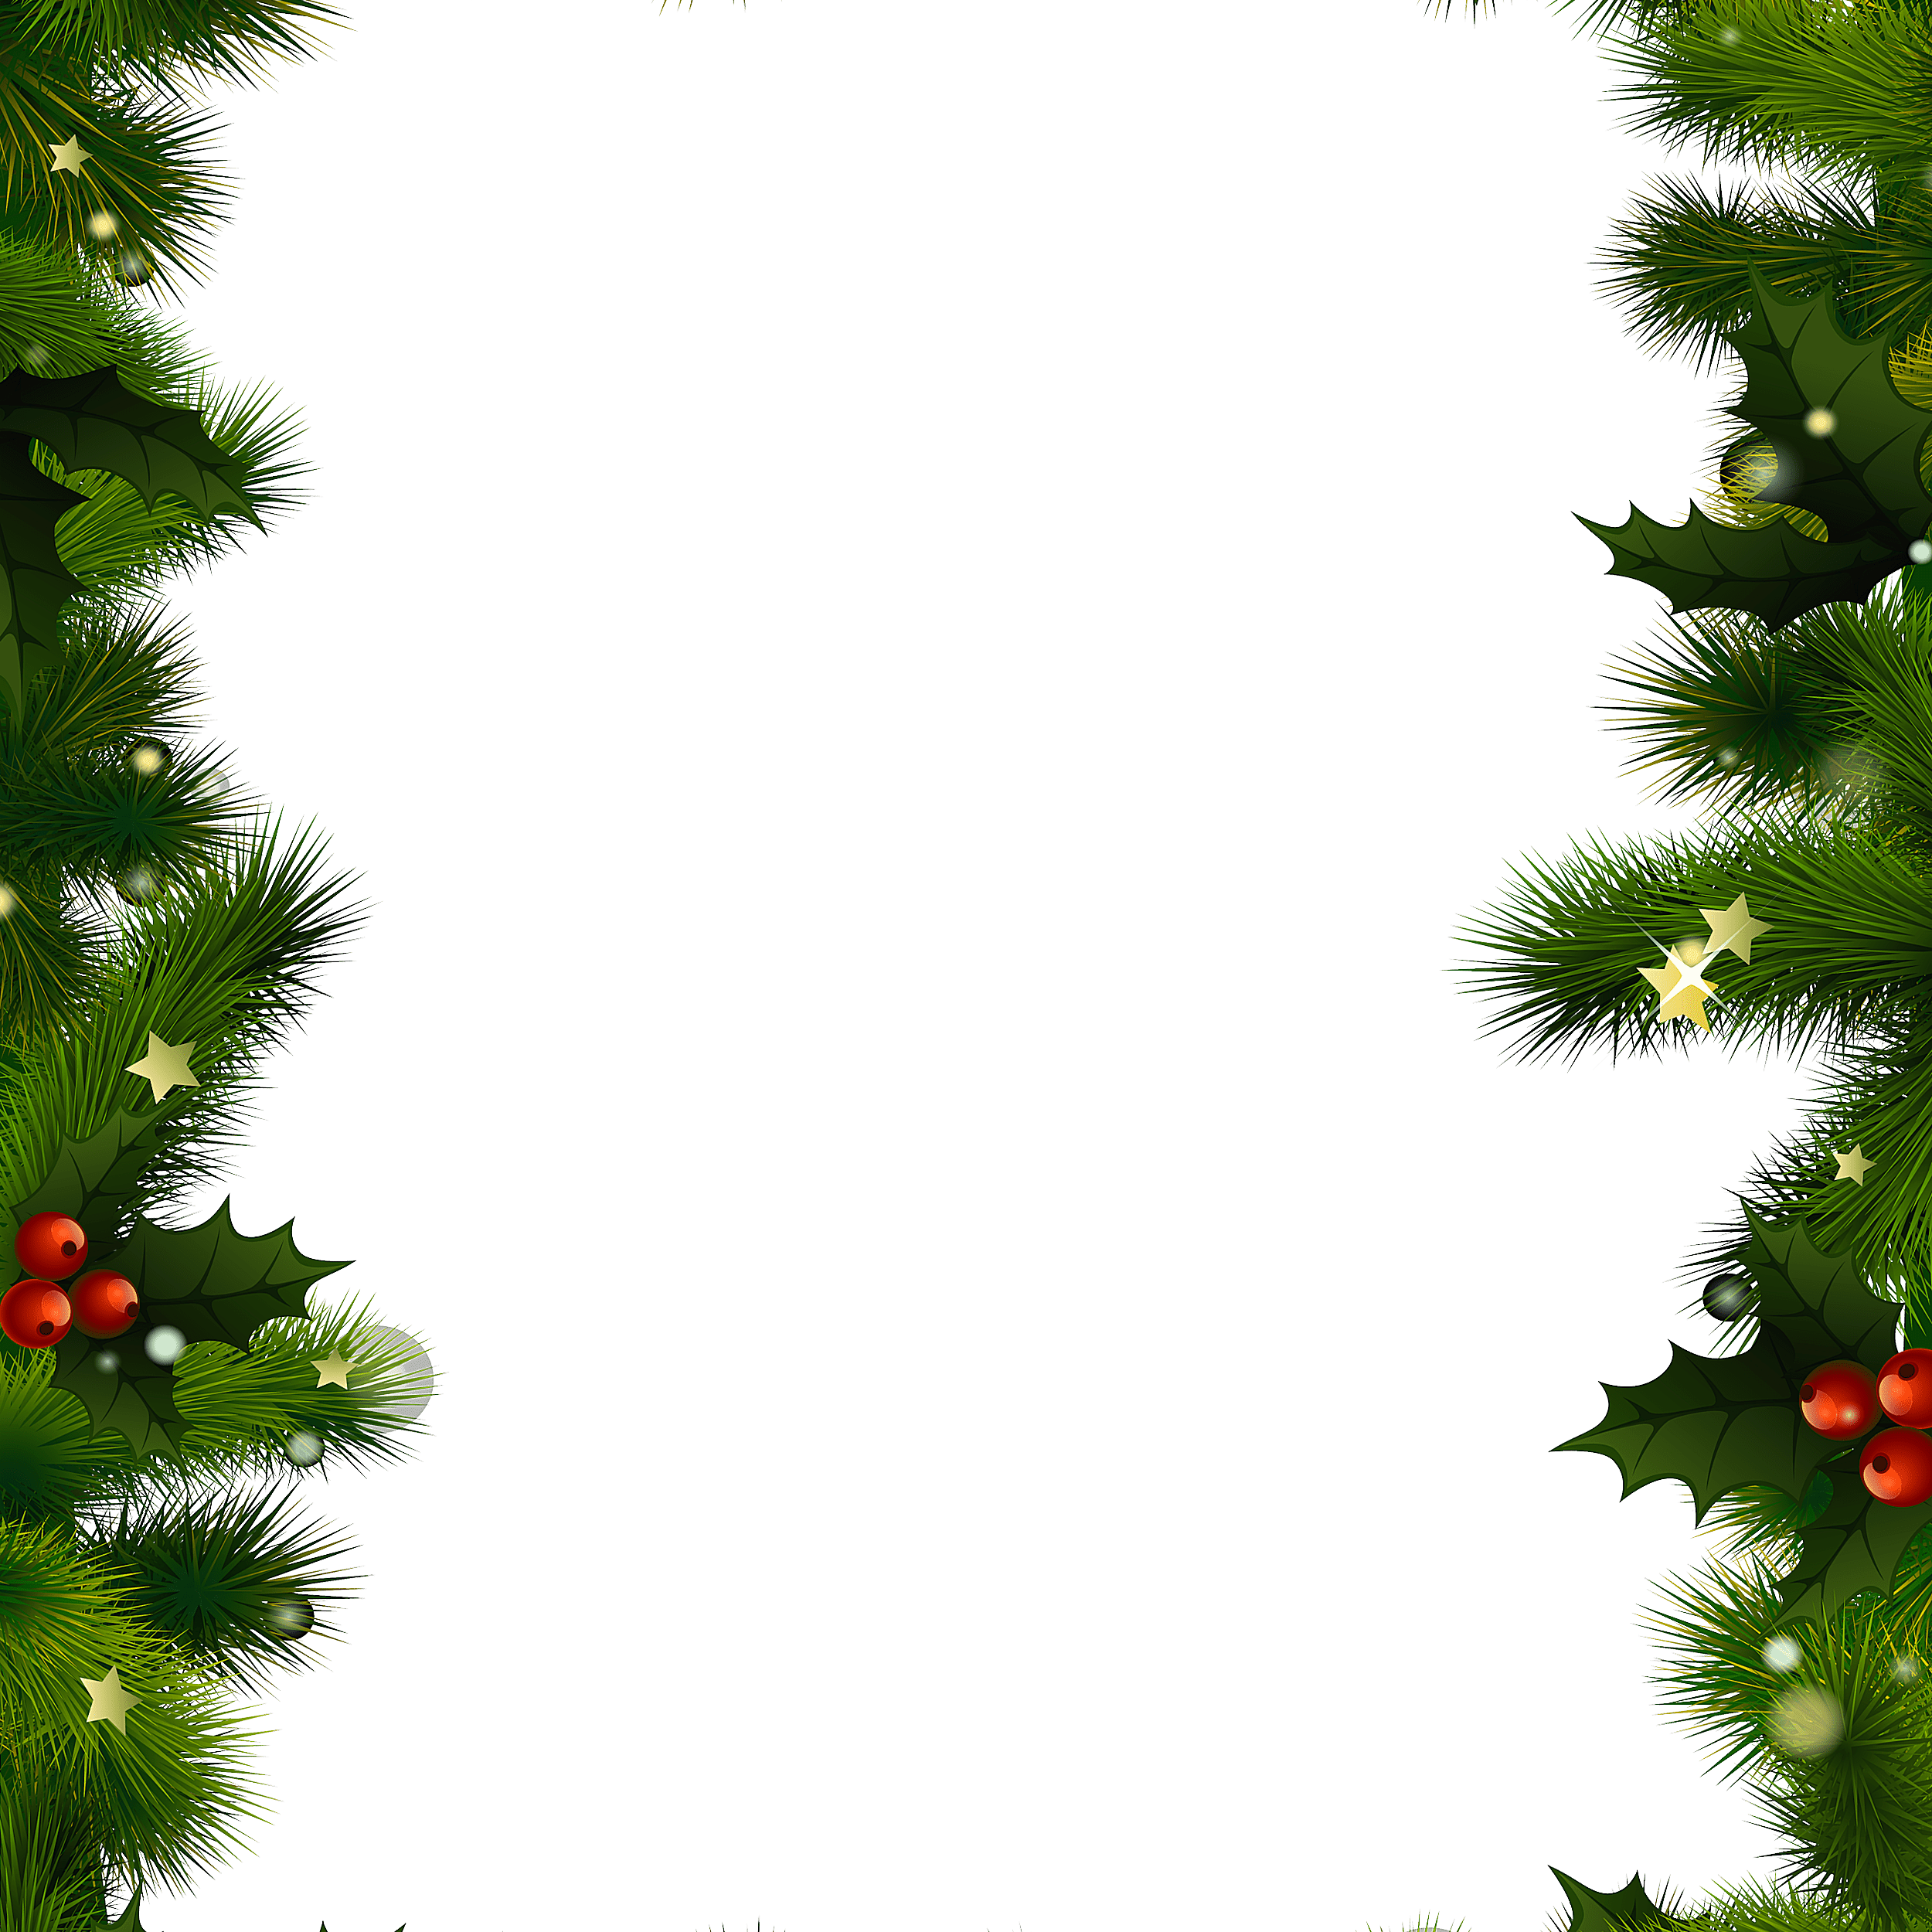 11 Creating Christmas Card Template 8 5 X 11 With Stunning Design for Christmas Card Template 8 5 X 11